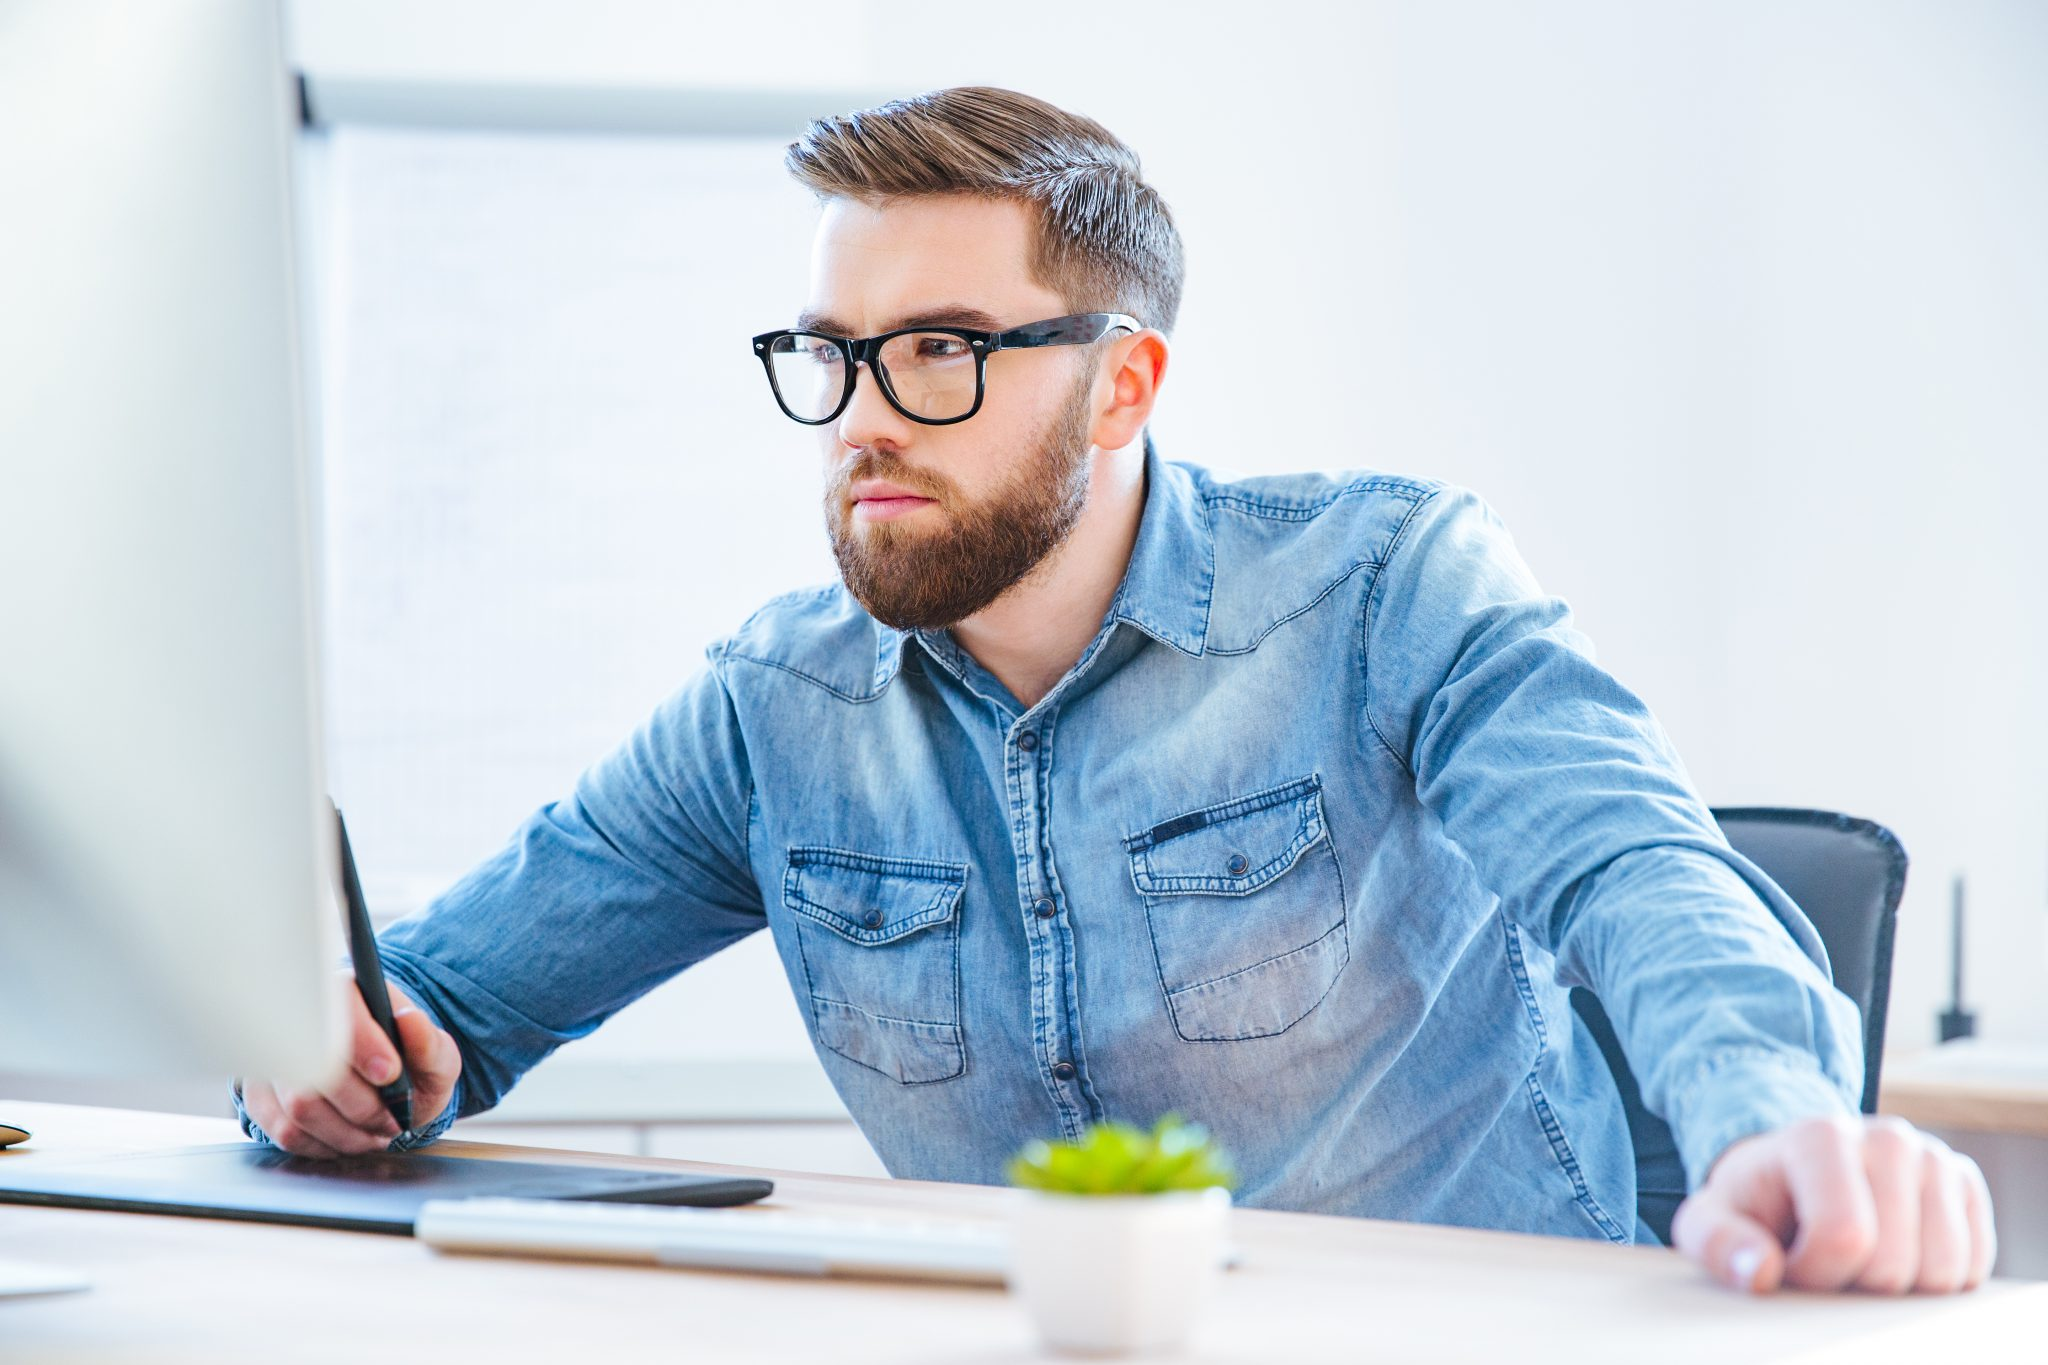 Serious concentrated man designer drawing with graphic pen tablet